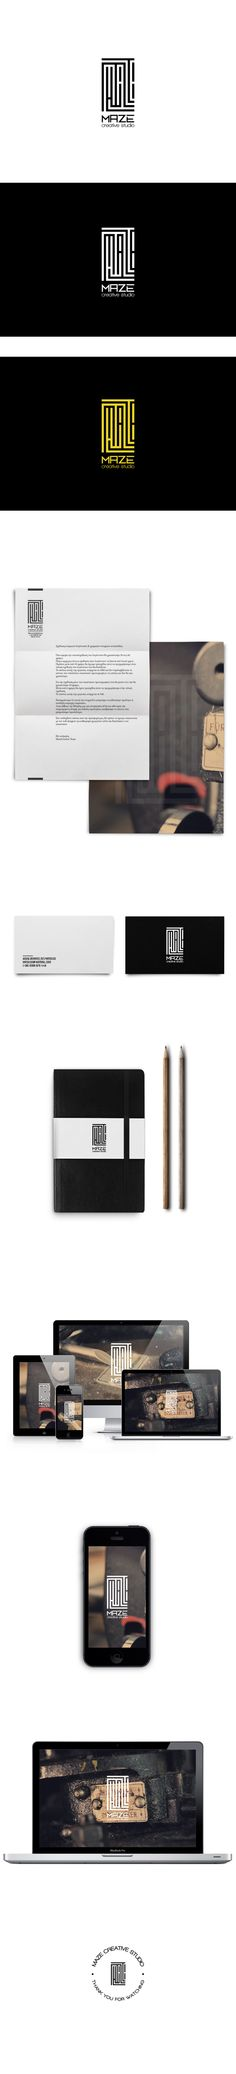 Maze identity by Maze Creative, via Behance